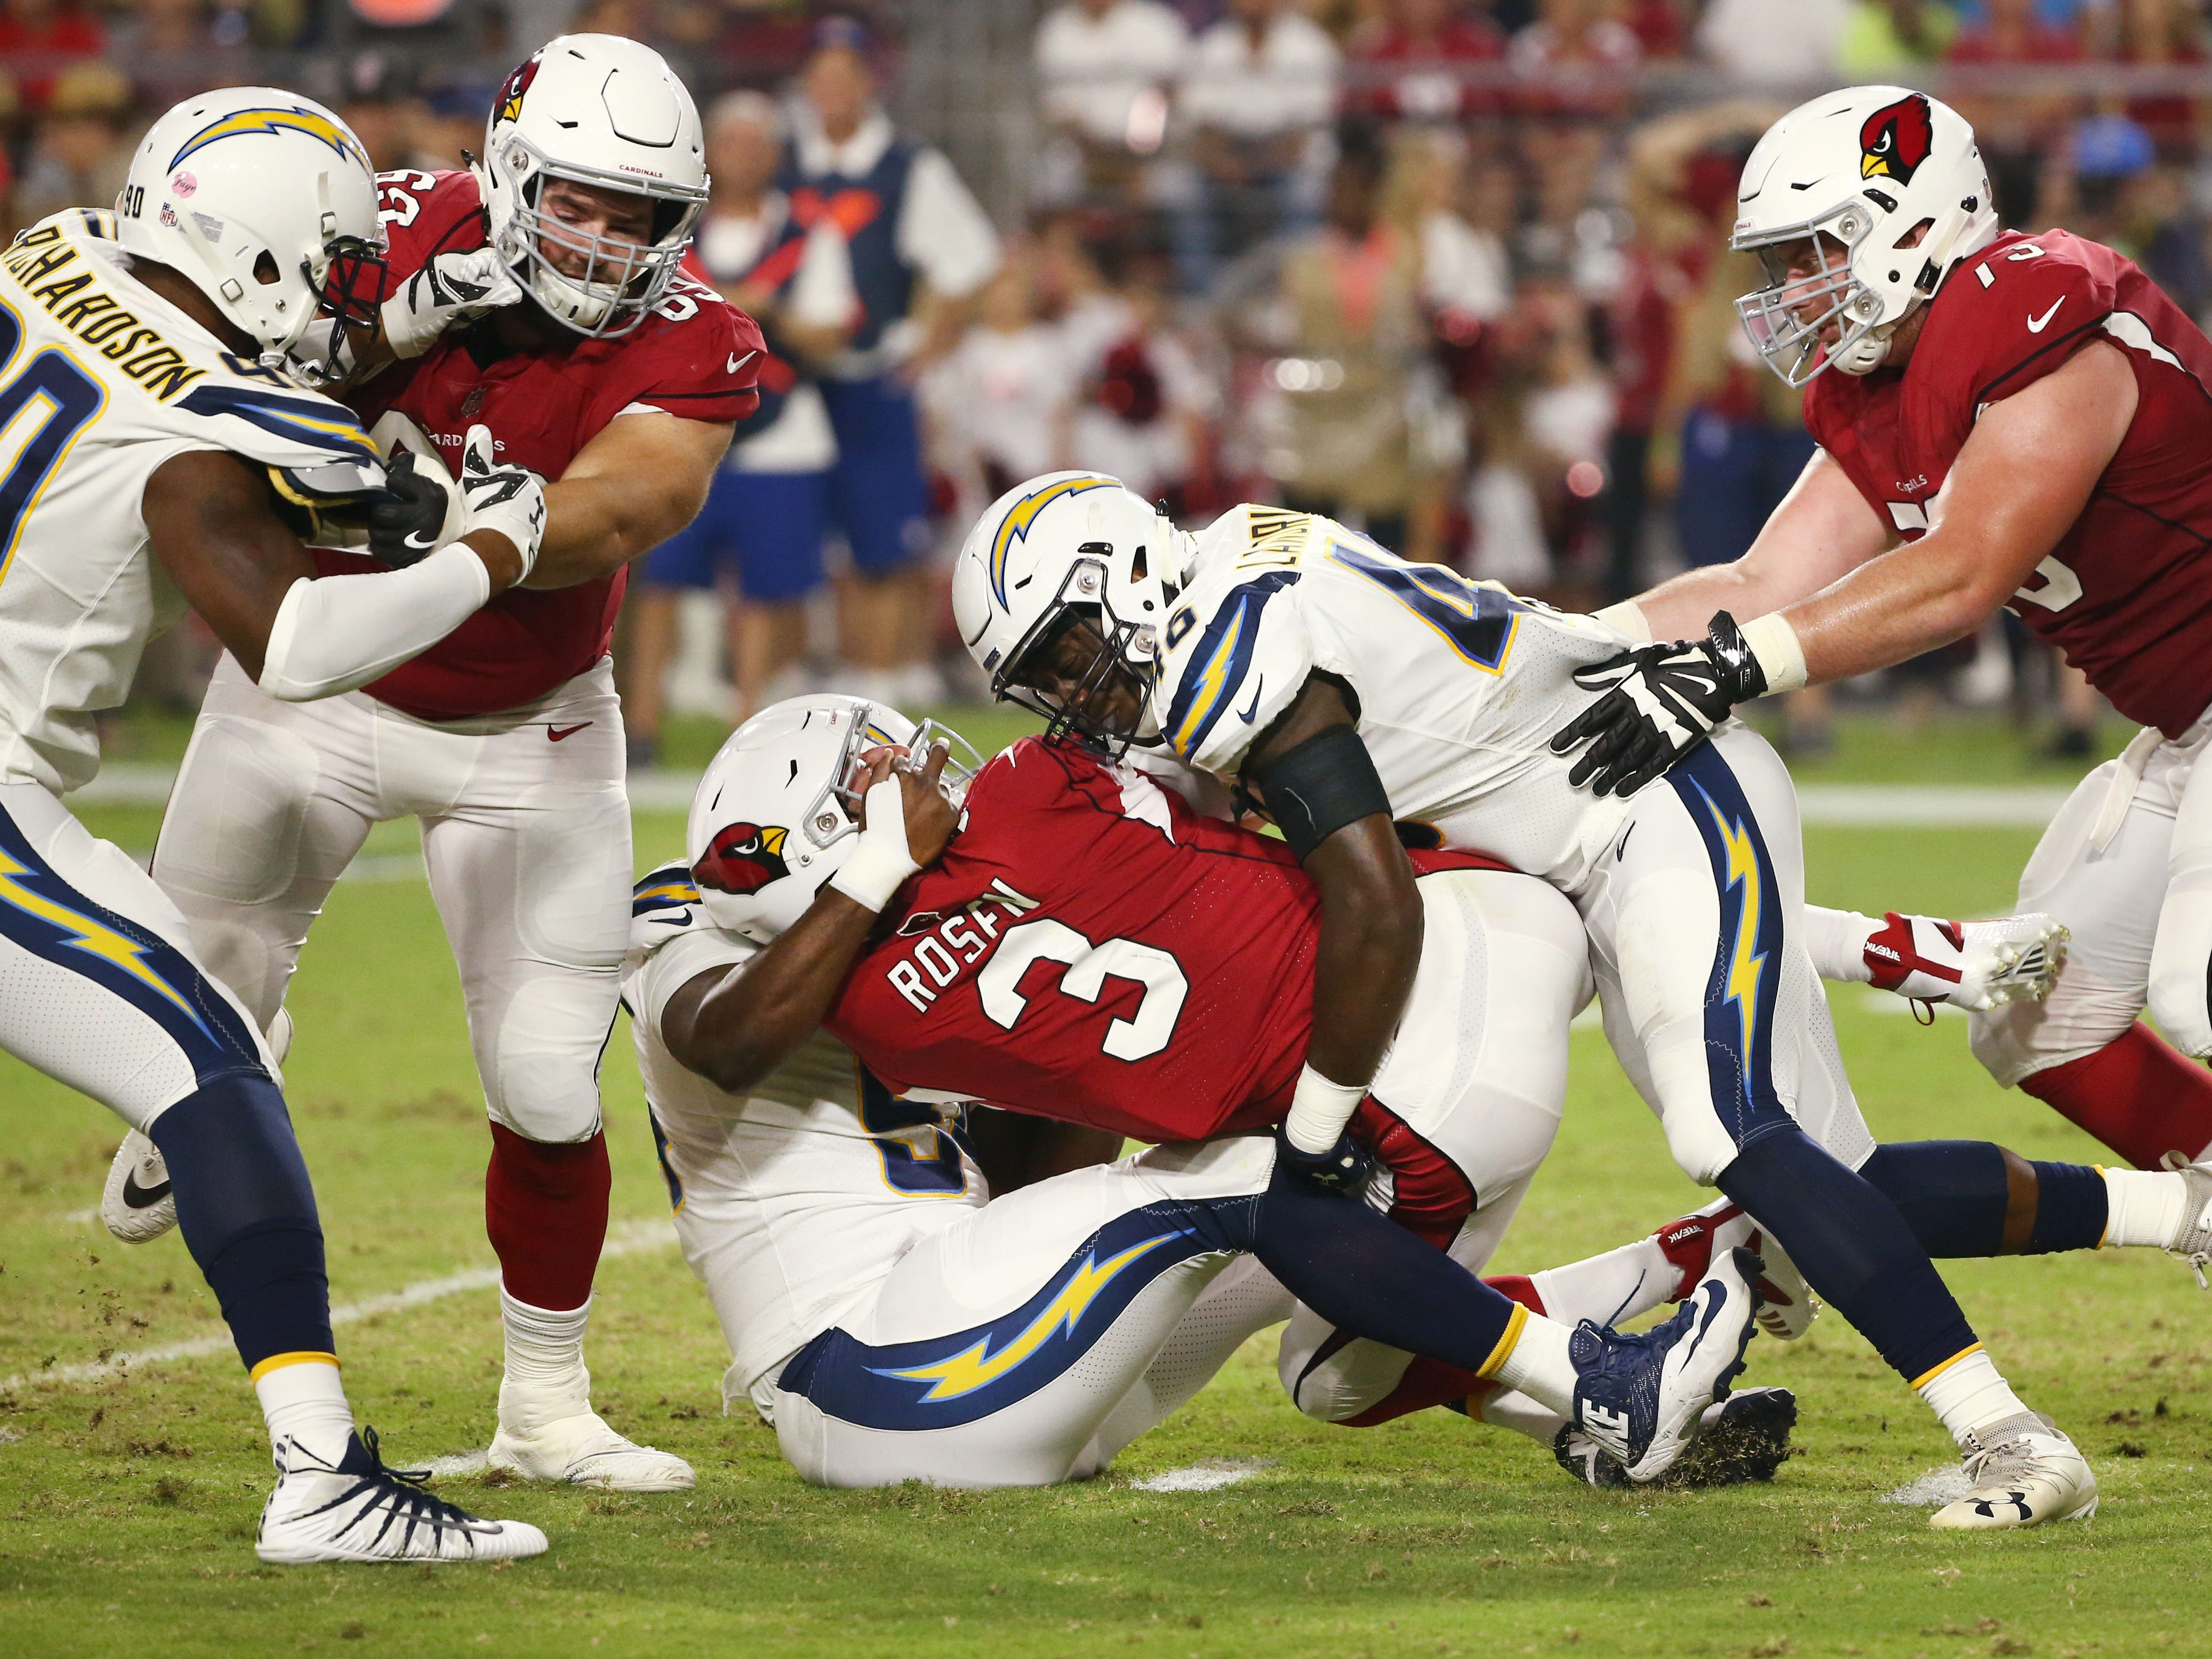 Arizona Cardinals Josh Rosen is face masked by L.A. Chargers Corey Liuget in the first half during a preseason NFL football game on Aug. 11, 2018 at University of Phoenix Stadium in Glendale, Ariz.